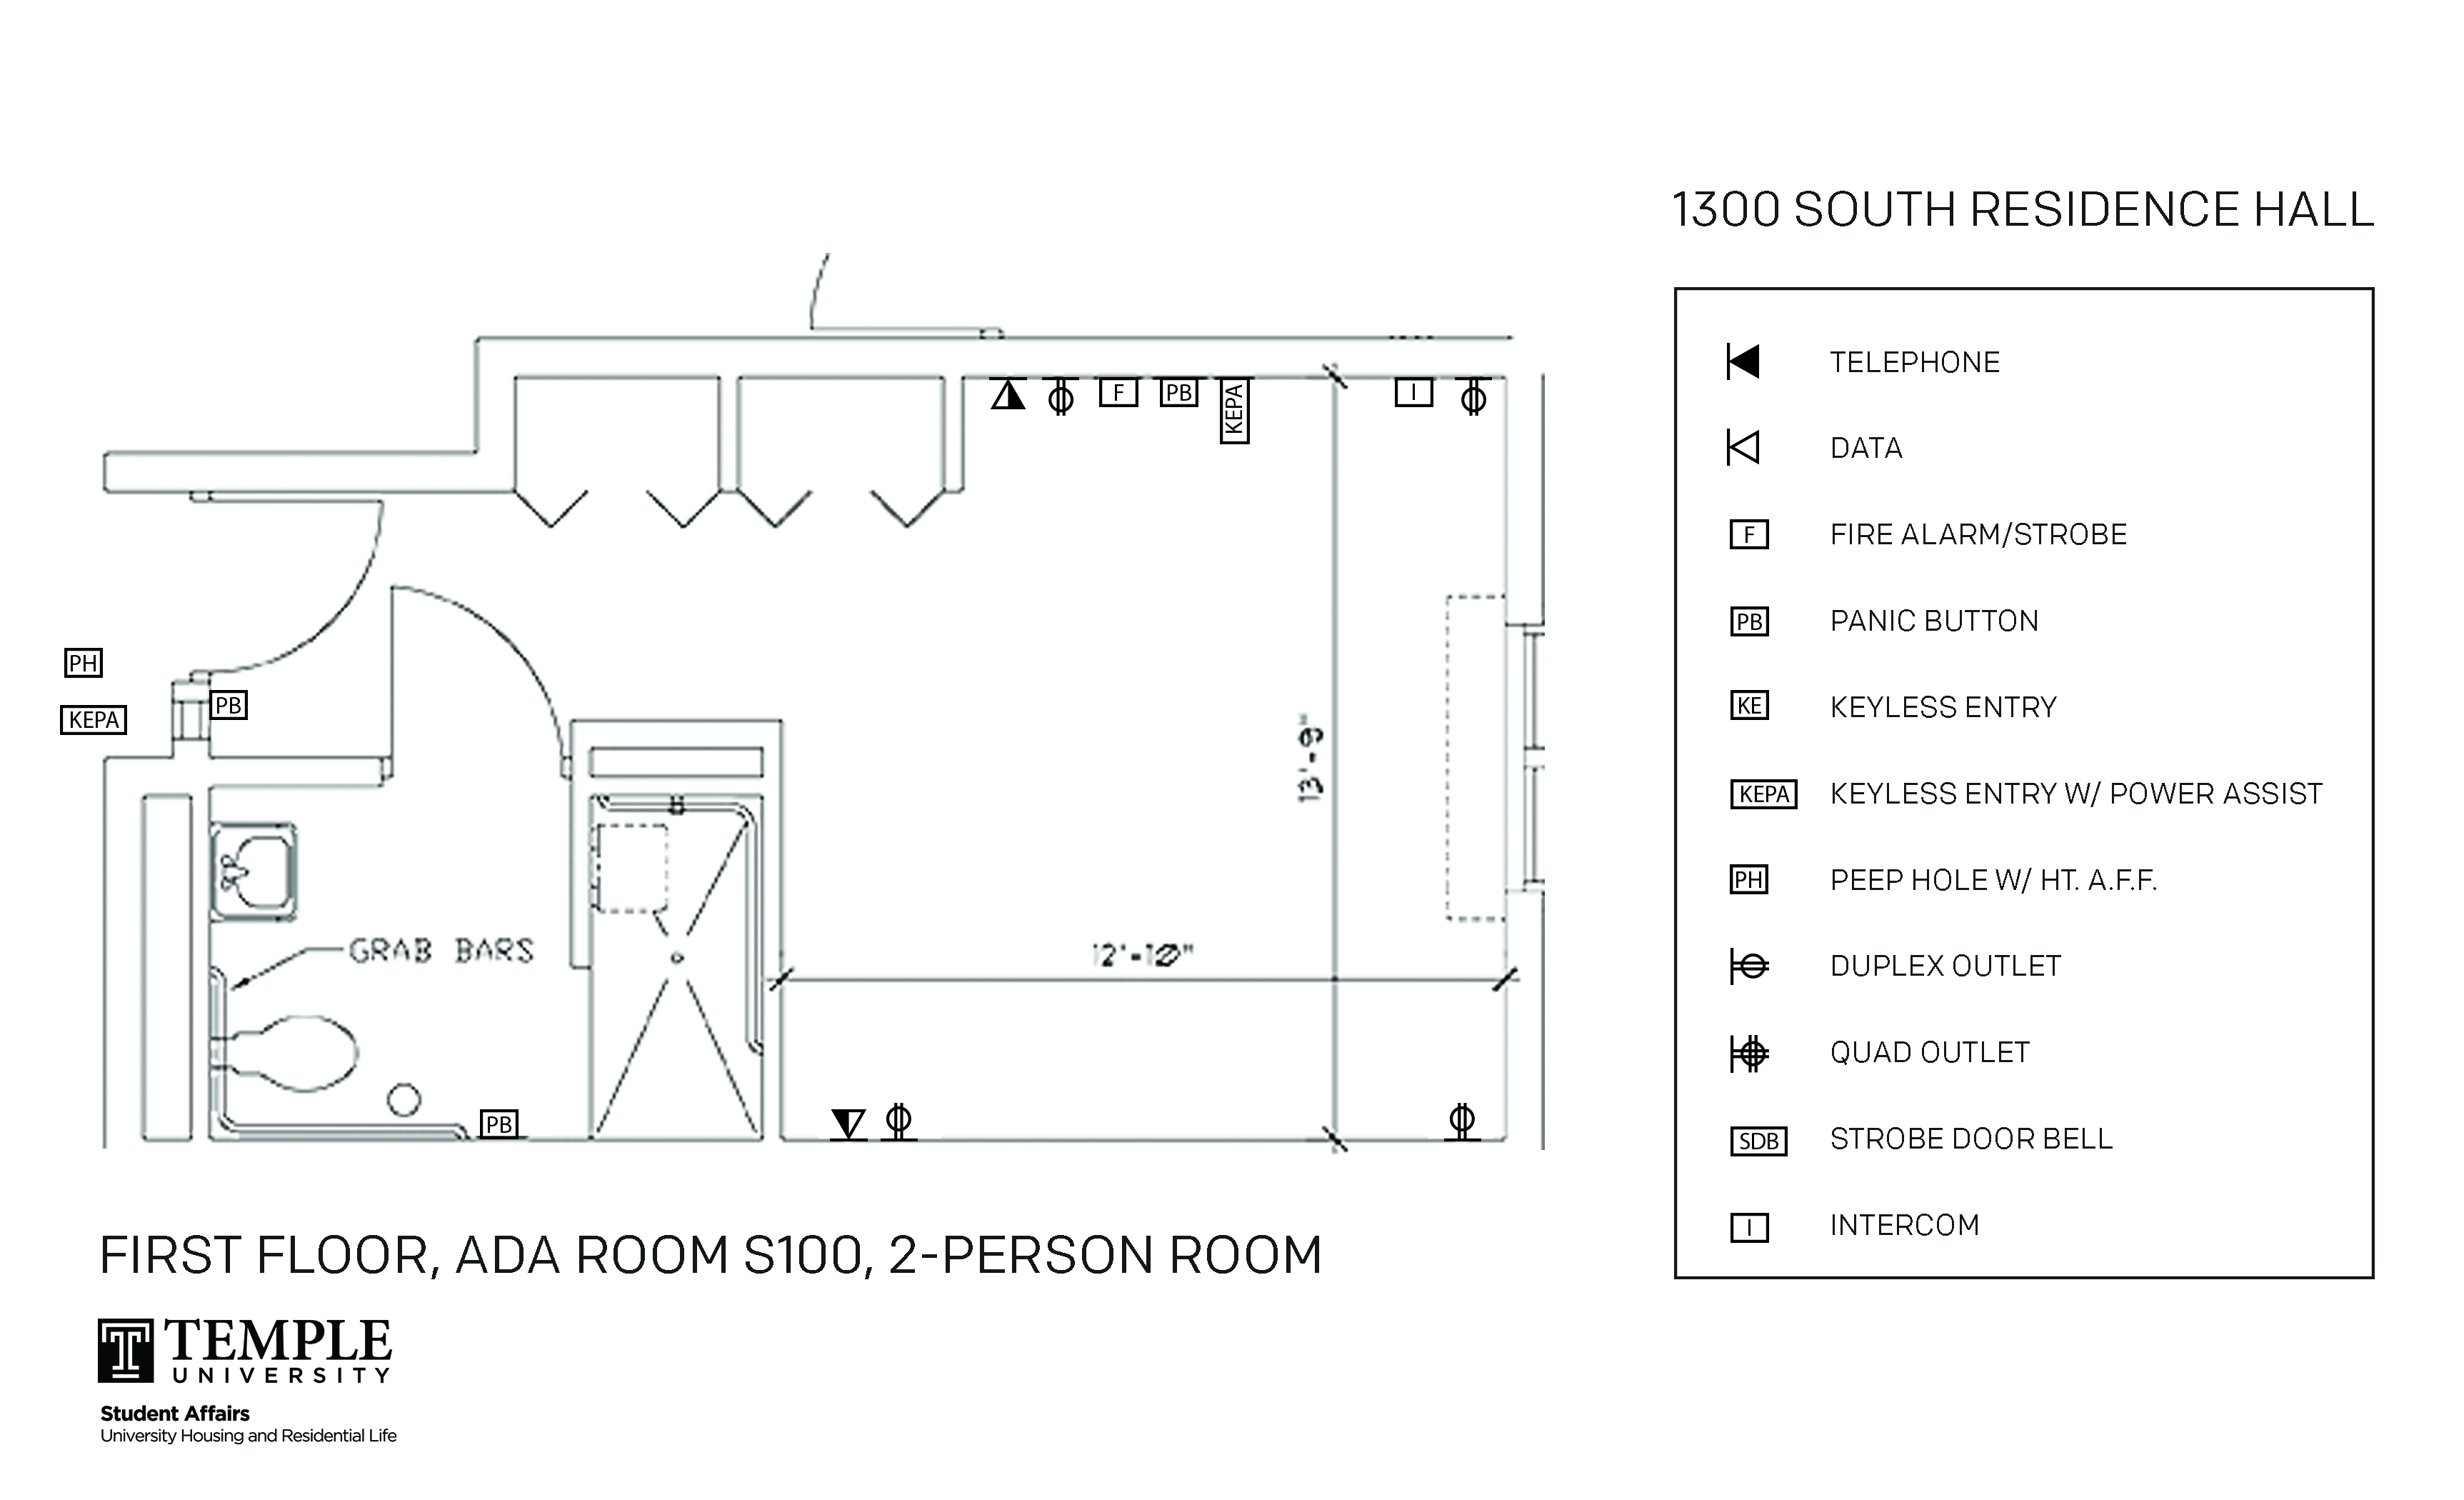 Accessible Room Diagrams: 1st Floor Room S100